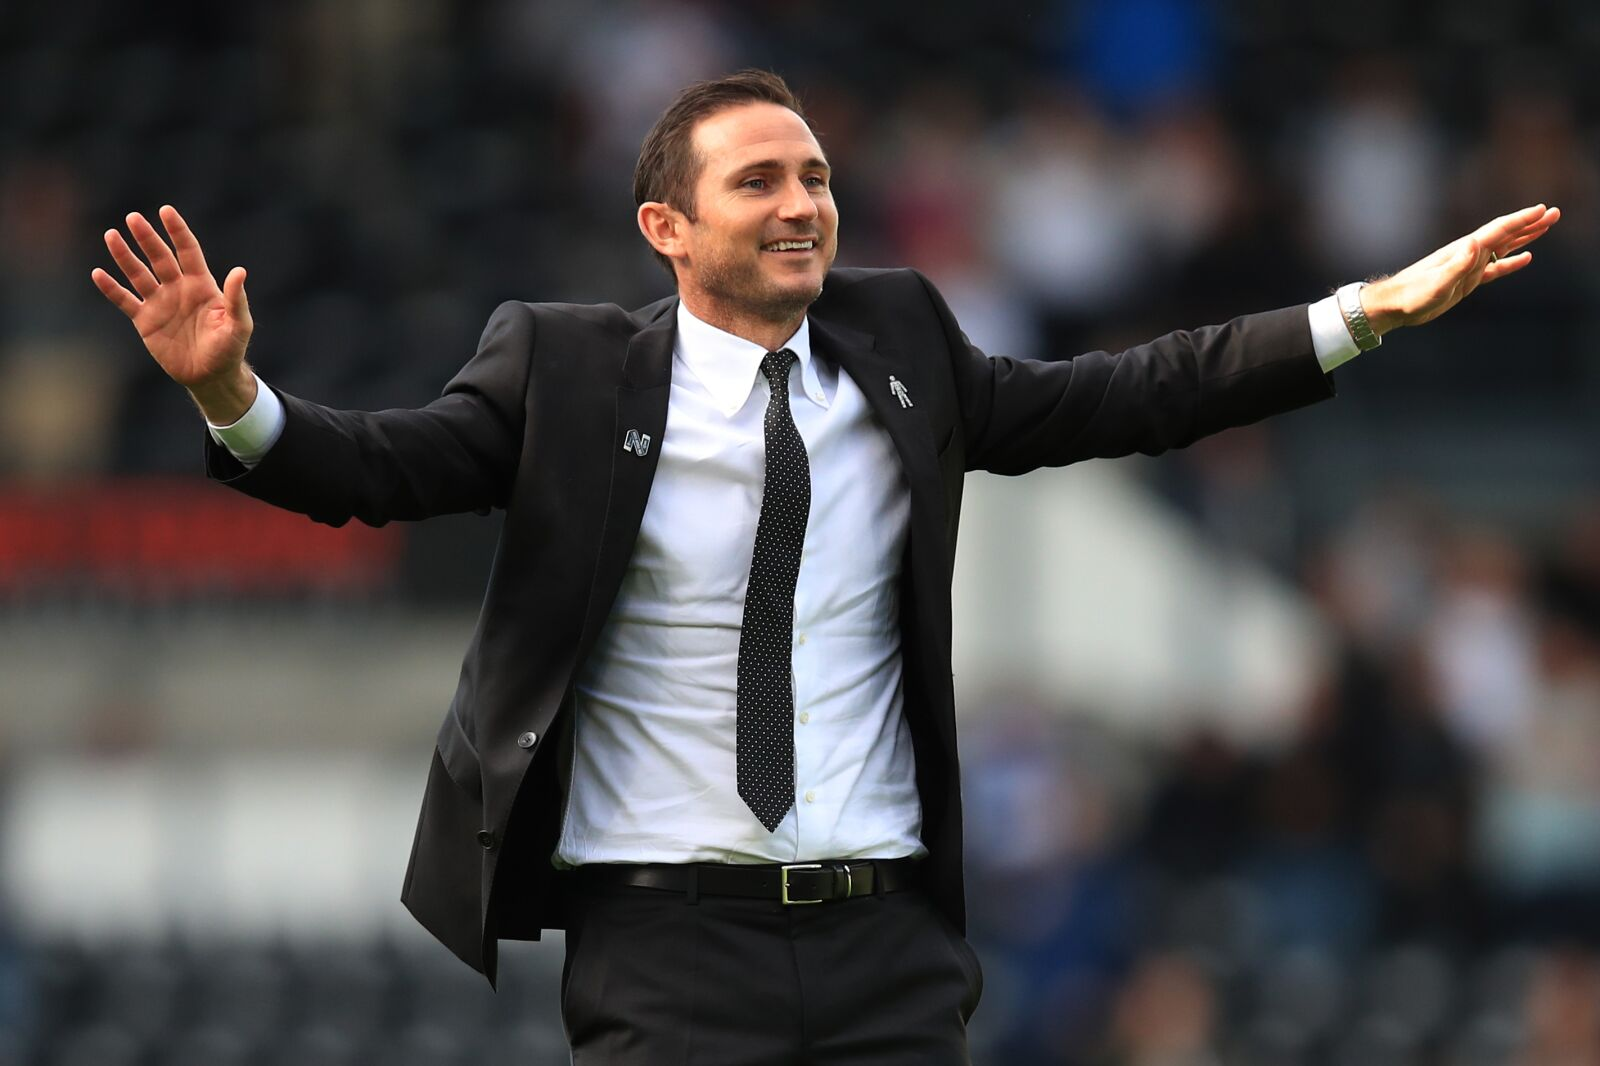 Chelsea: Frank Lampard has the right qualities, but maybe not at this time